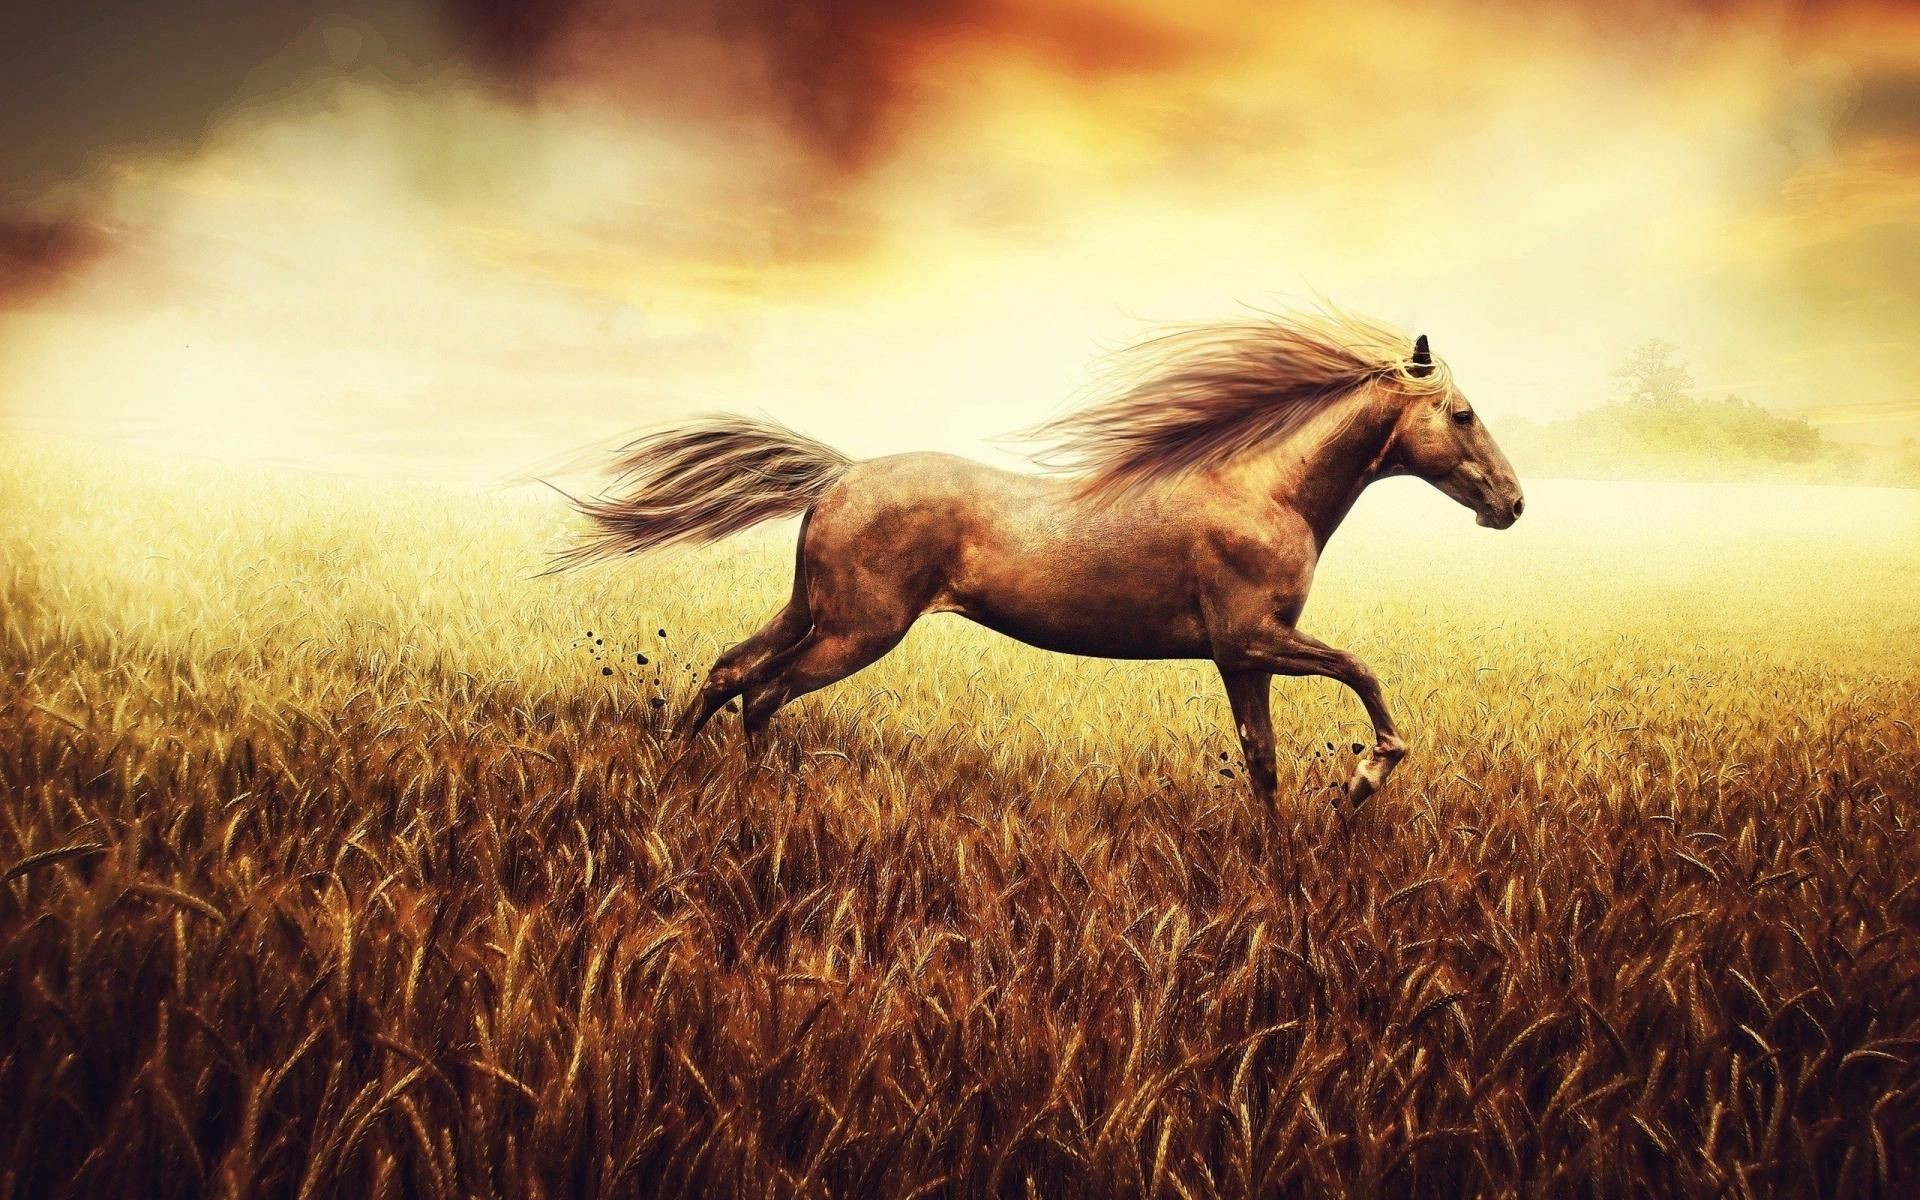 Running Horse Hd Wallpaper Running Horse Hd Wallpaper Way Of Life 432 Hz Hans Zimmer 1920x1200 Wallpaper Teahub Io